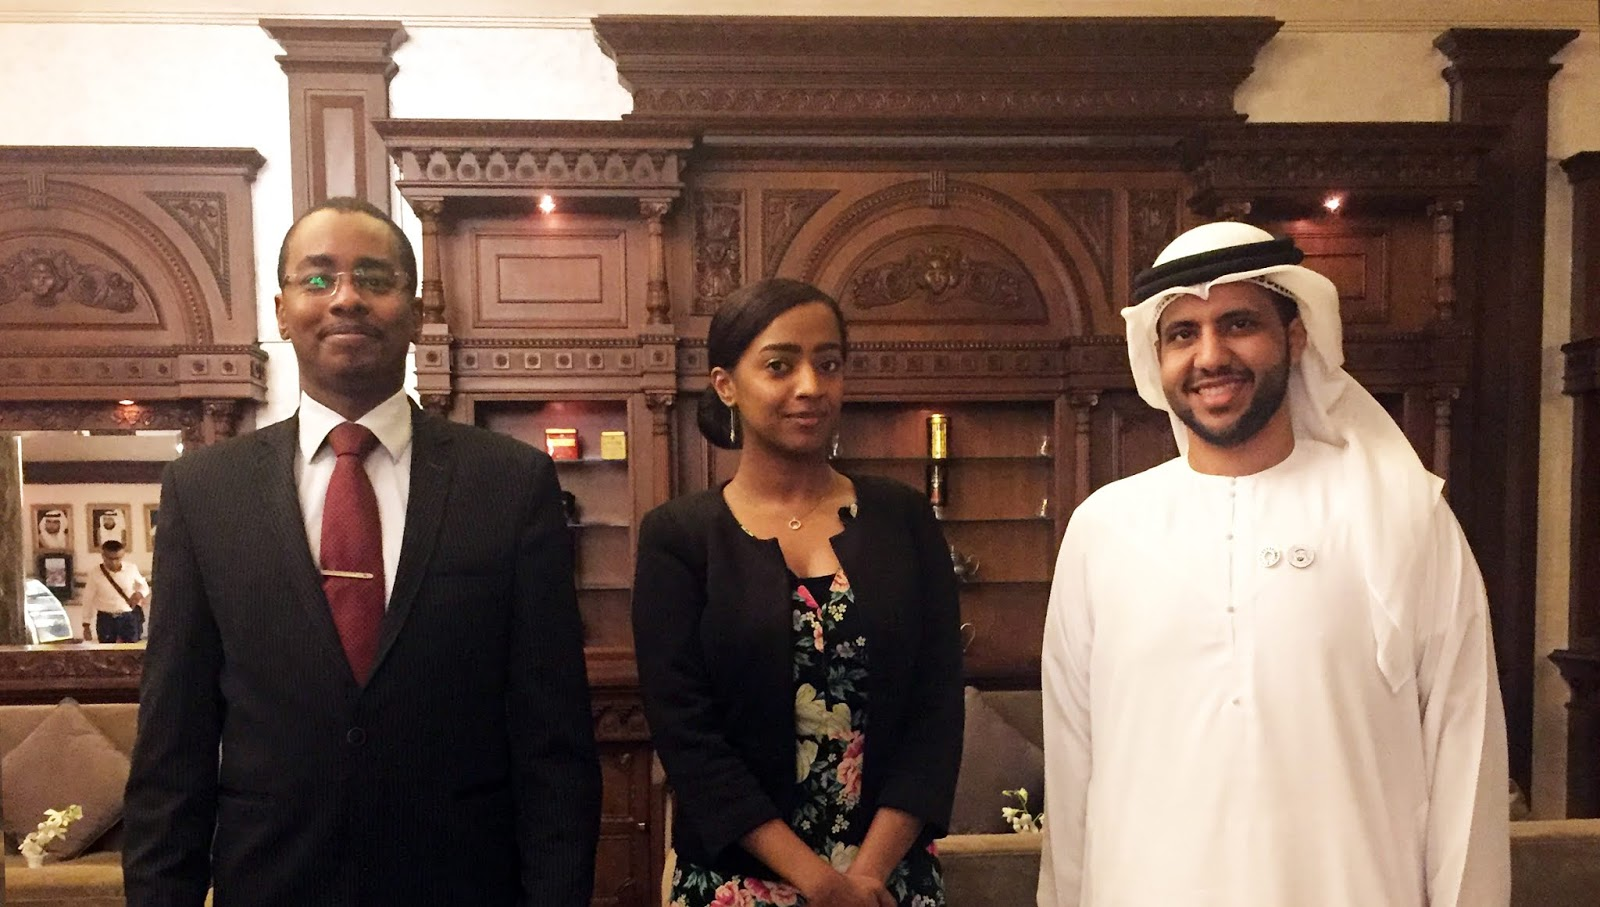 From right to left: H.E. Ambassador Saeed ZAKI, IYF SG, Ms. Ebtihal Alkanzy, Special Regional Coordinator in the Middle East, and Eng. Mohamed Al Shatri, IYF Representative in the United Arab Emirates. Photo: IYF UAE